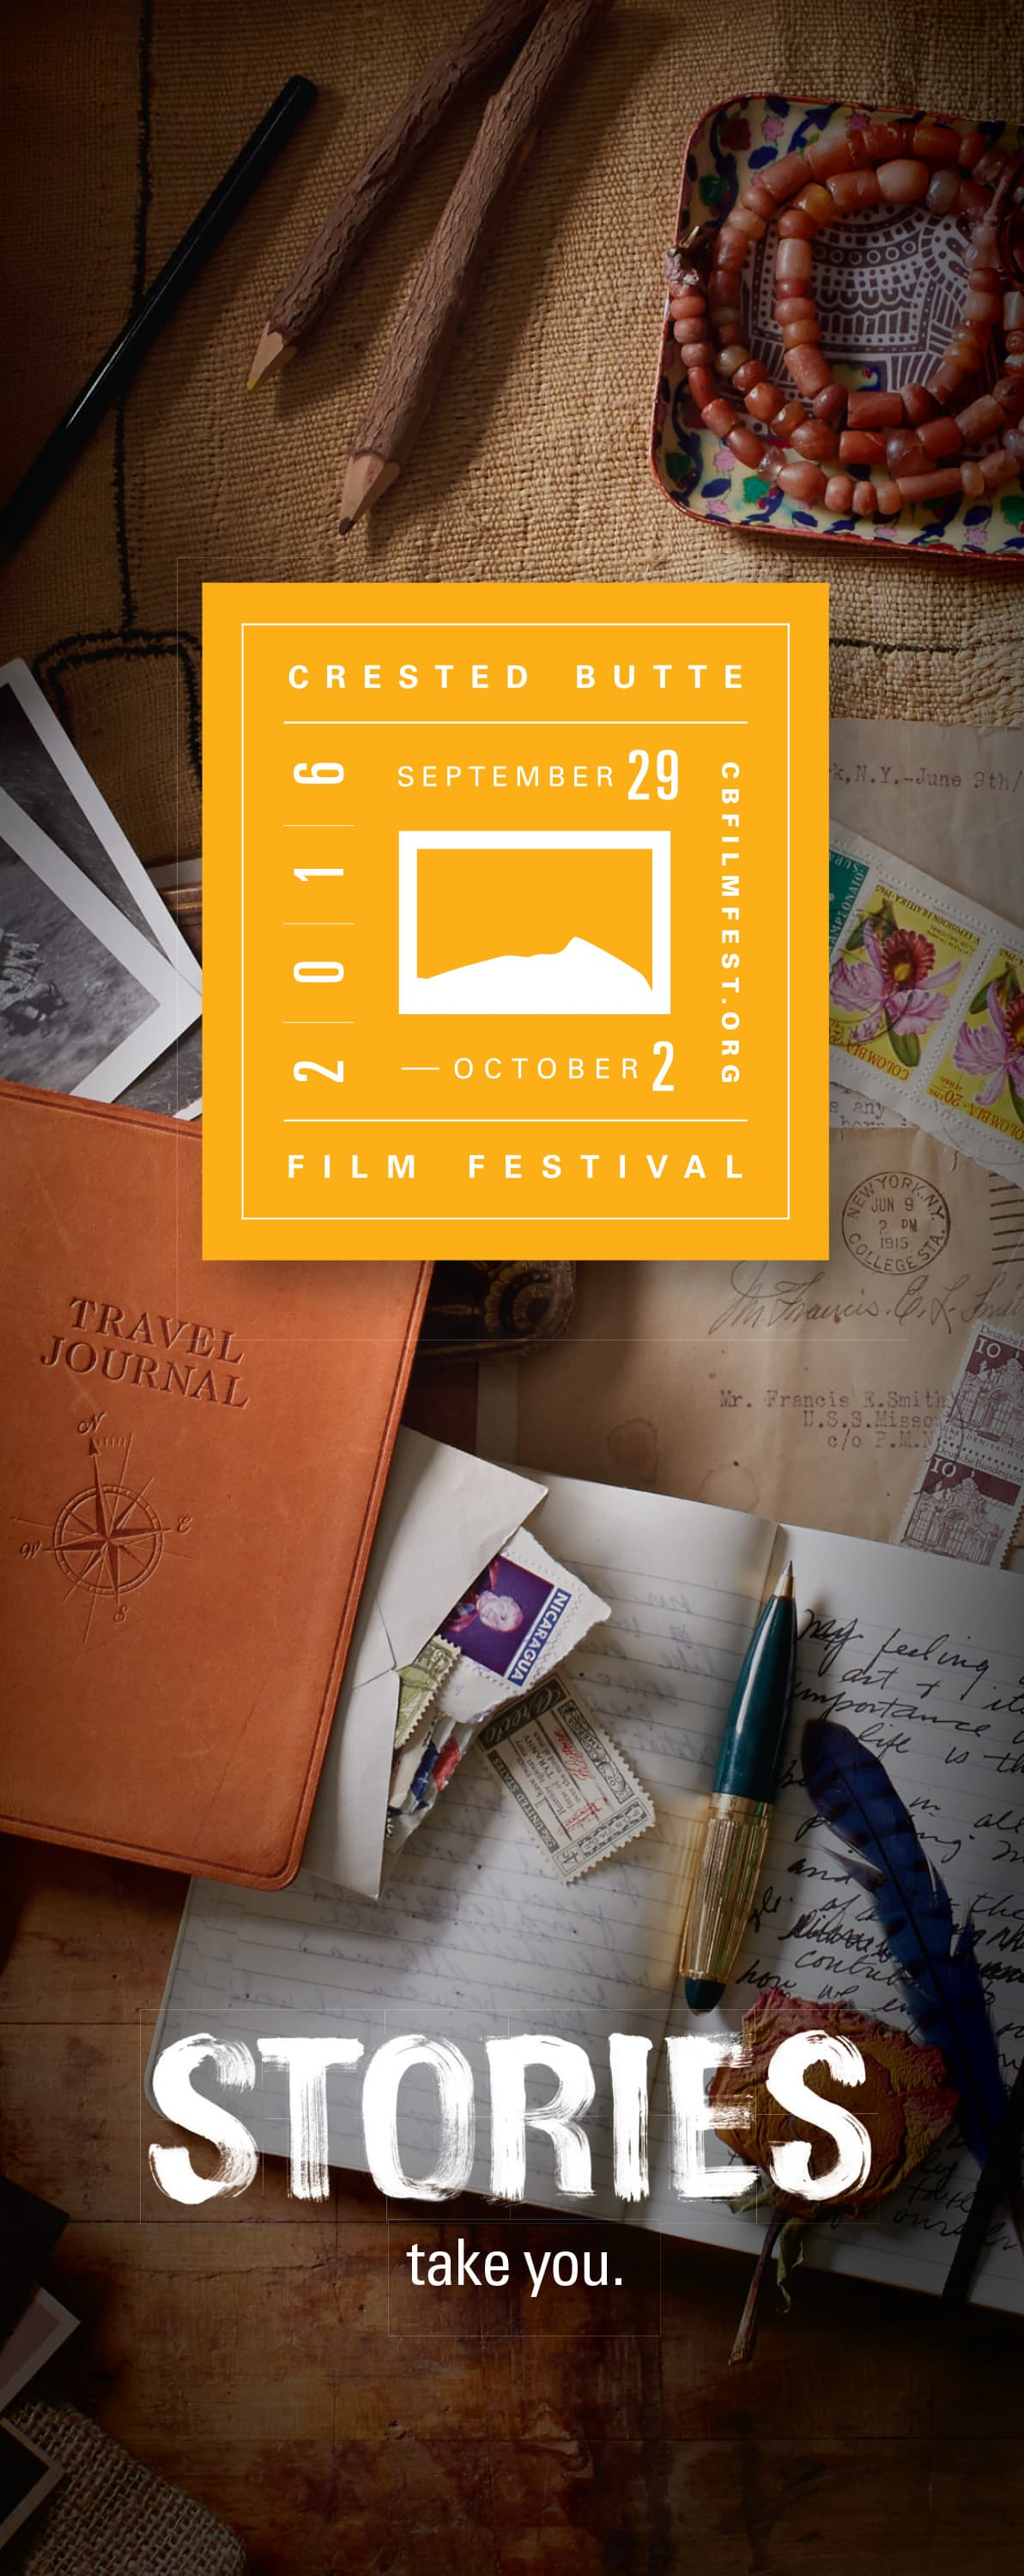 The Crested Butte Film Festival